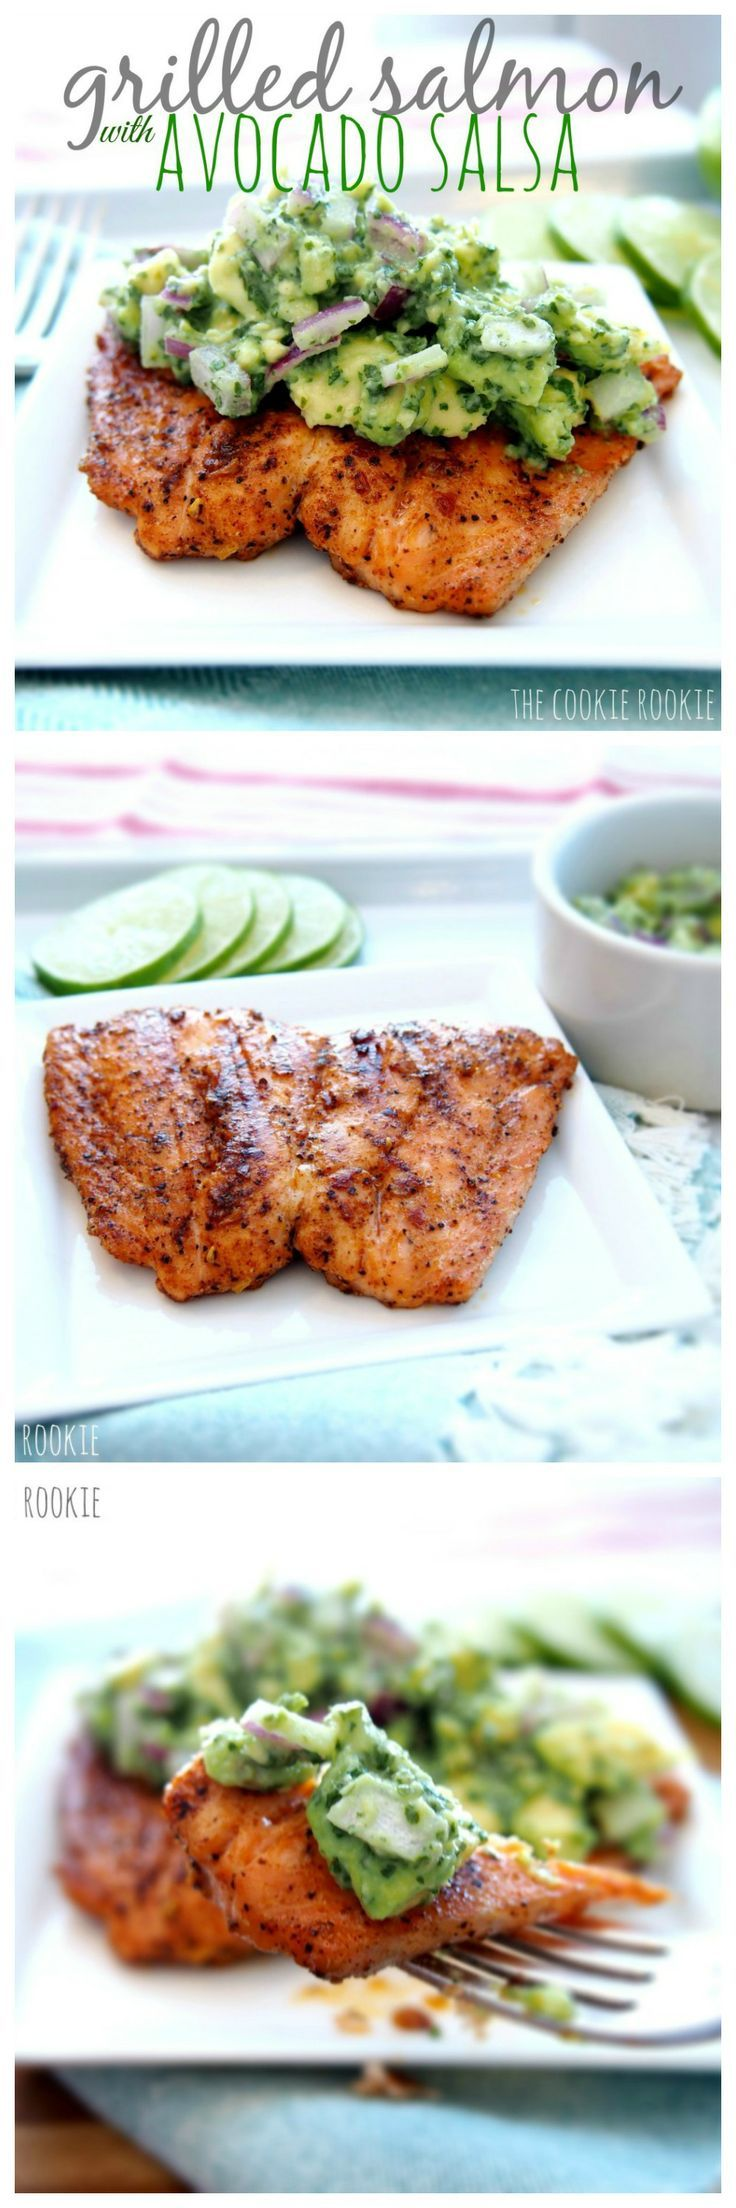 Grilled Salmon with Avocado Salsa. Delicious, healthy and easy. Perfect for the warmer weather! {The Cookie Rookie}